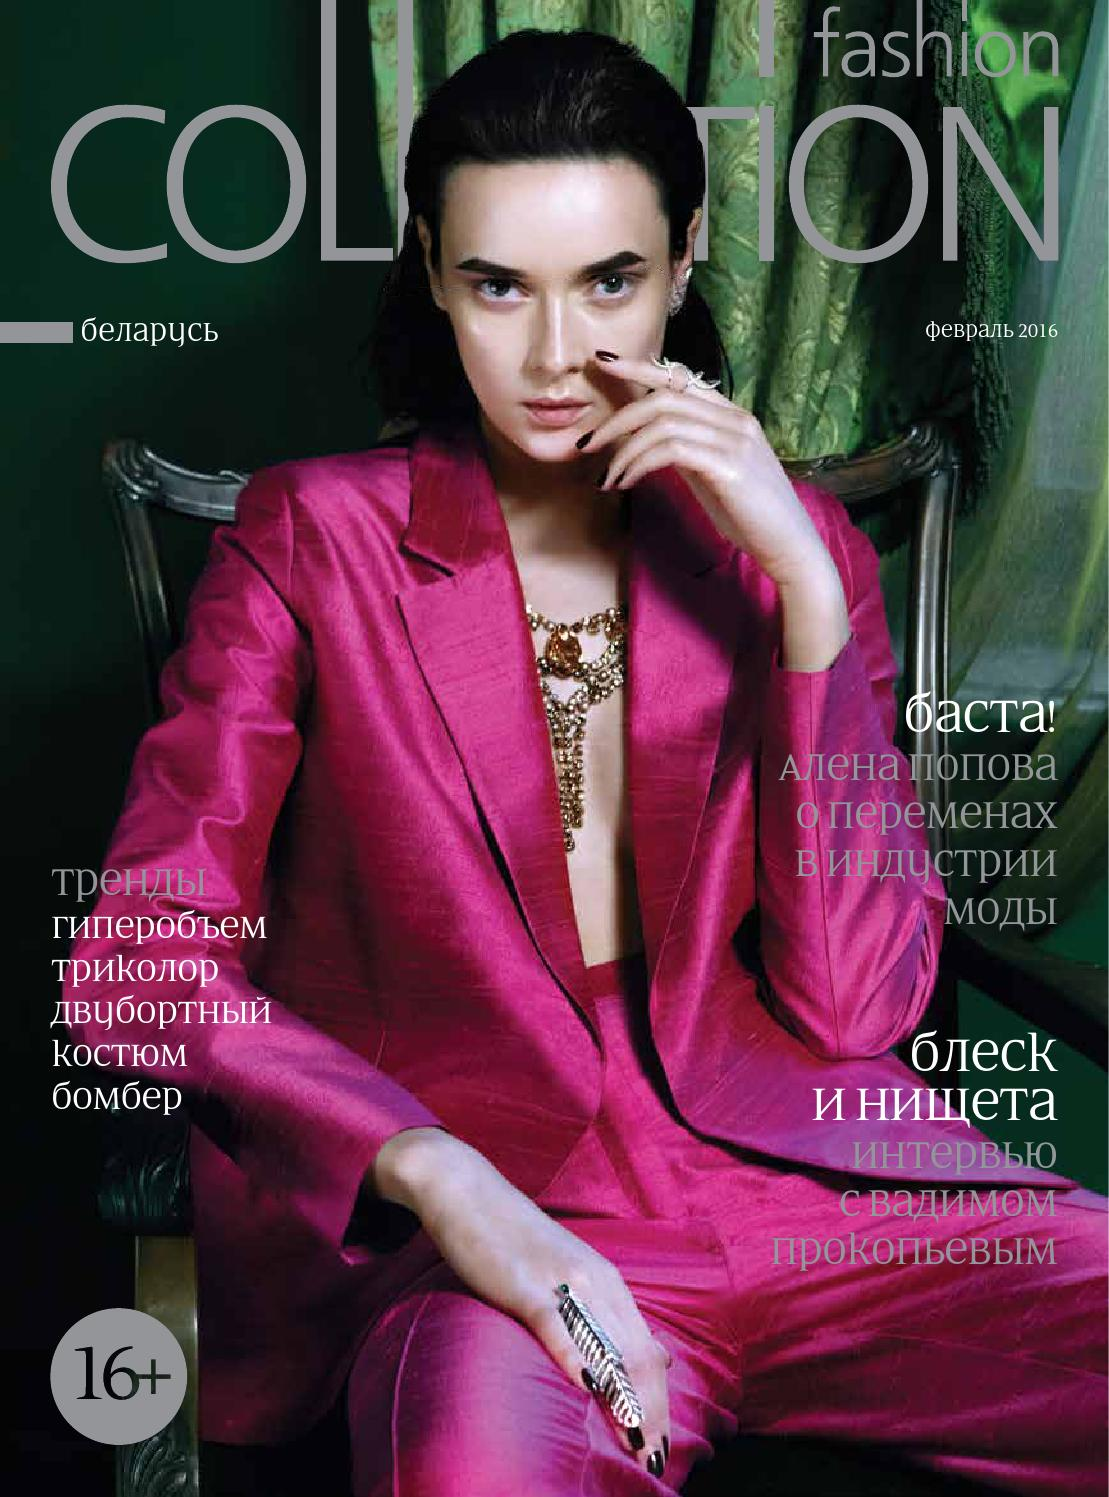 11de16bec553 Fashion Collection Belarus   February   2016 by Fashion Collection Belarus  - issuu